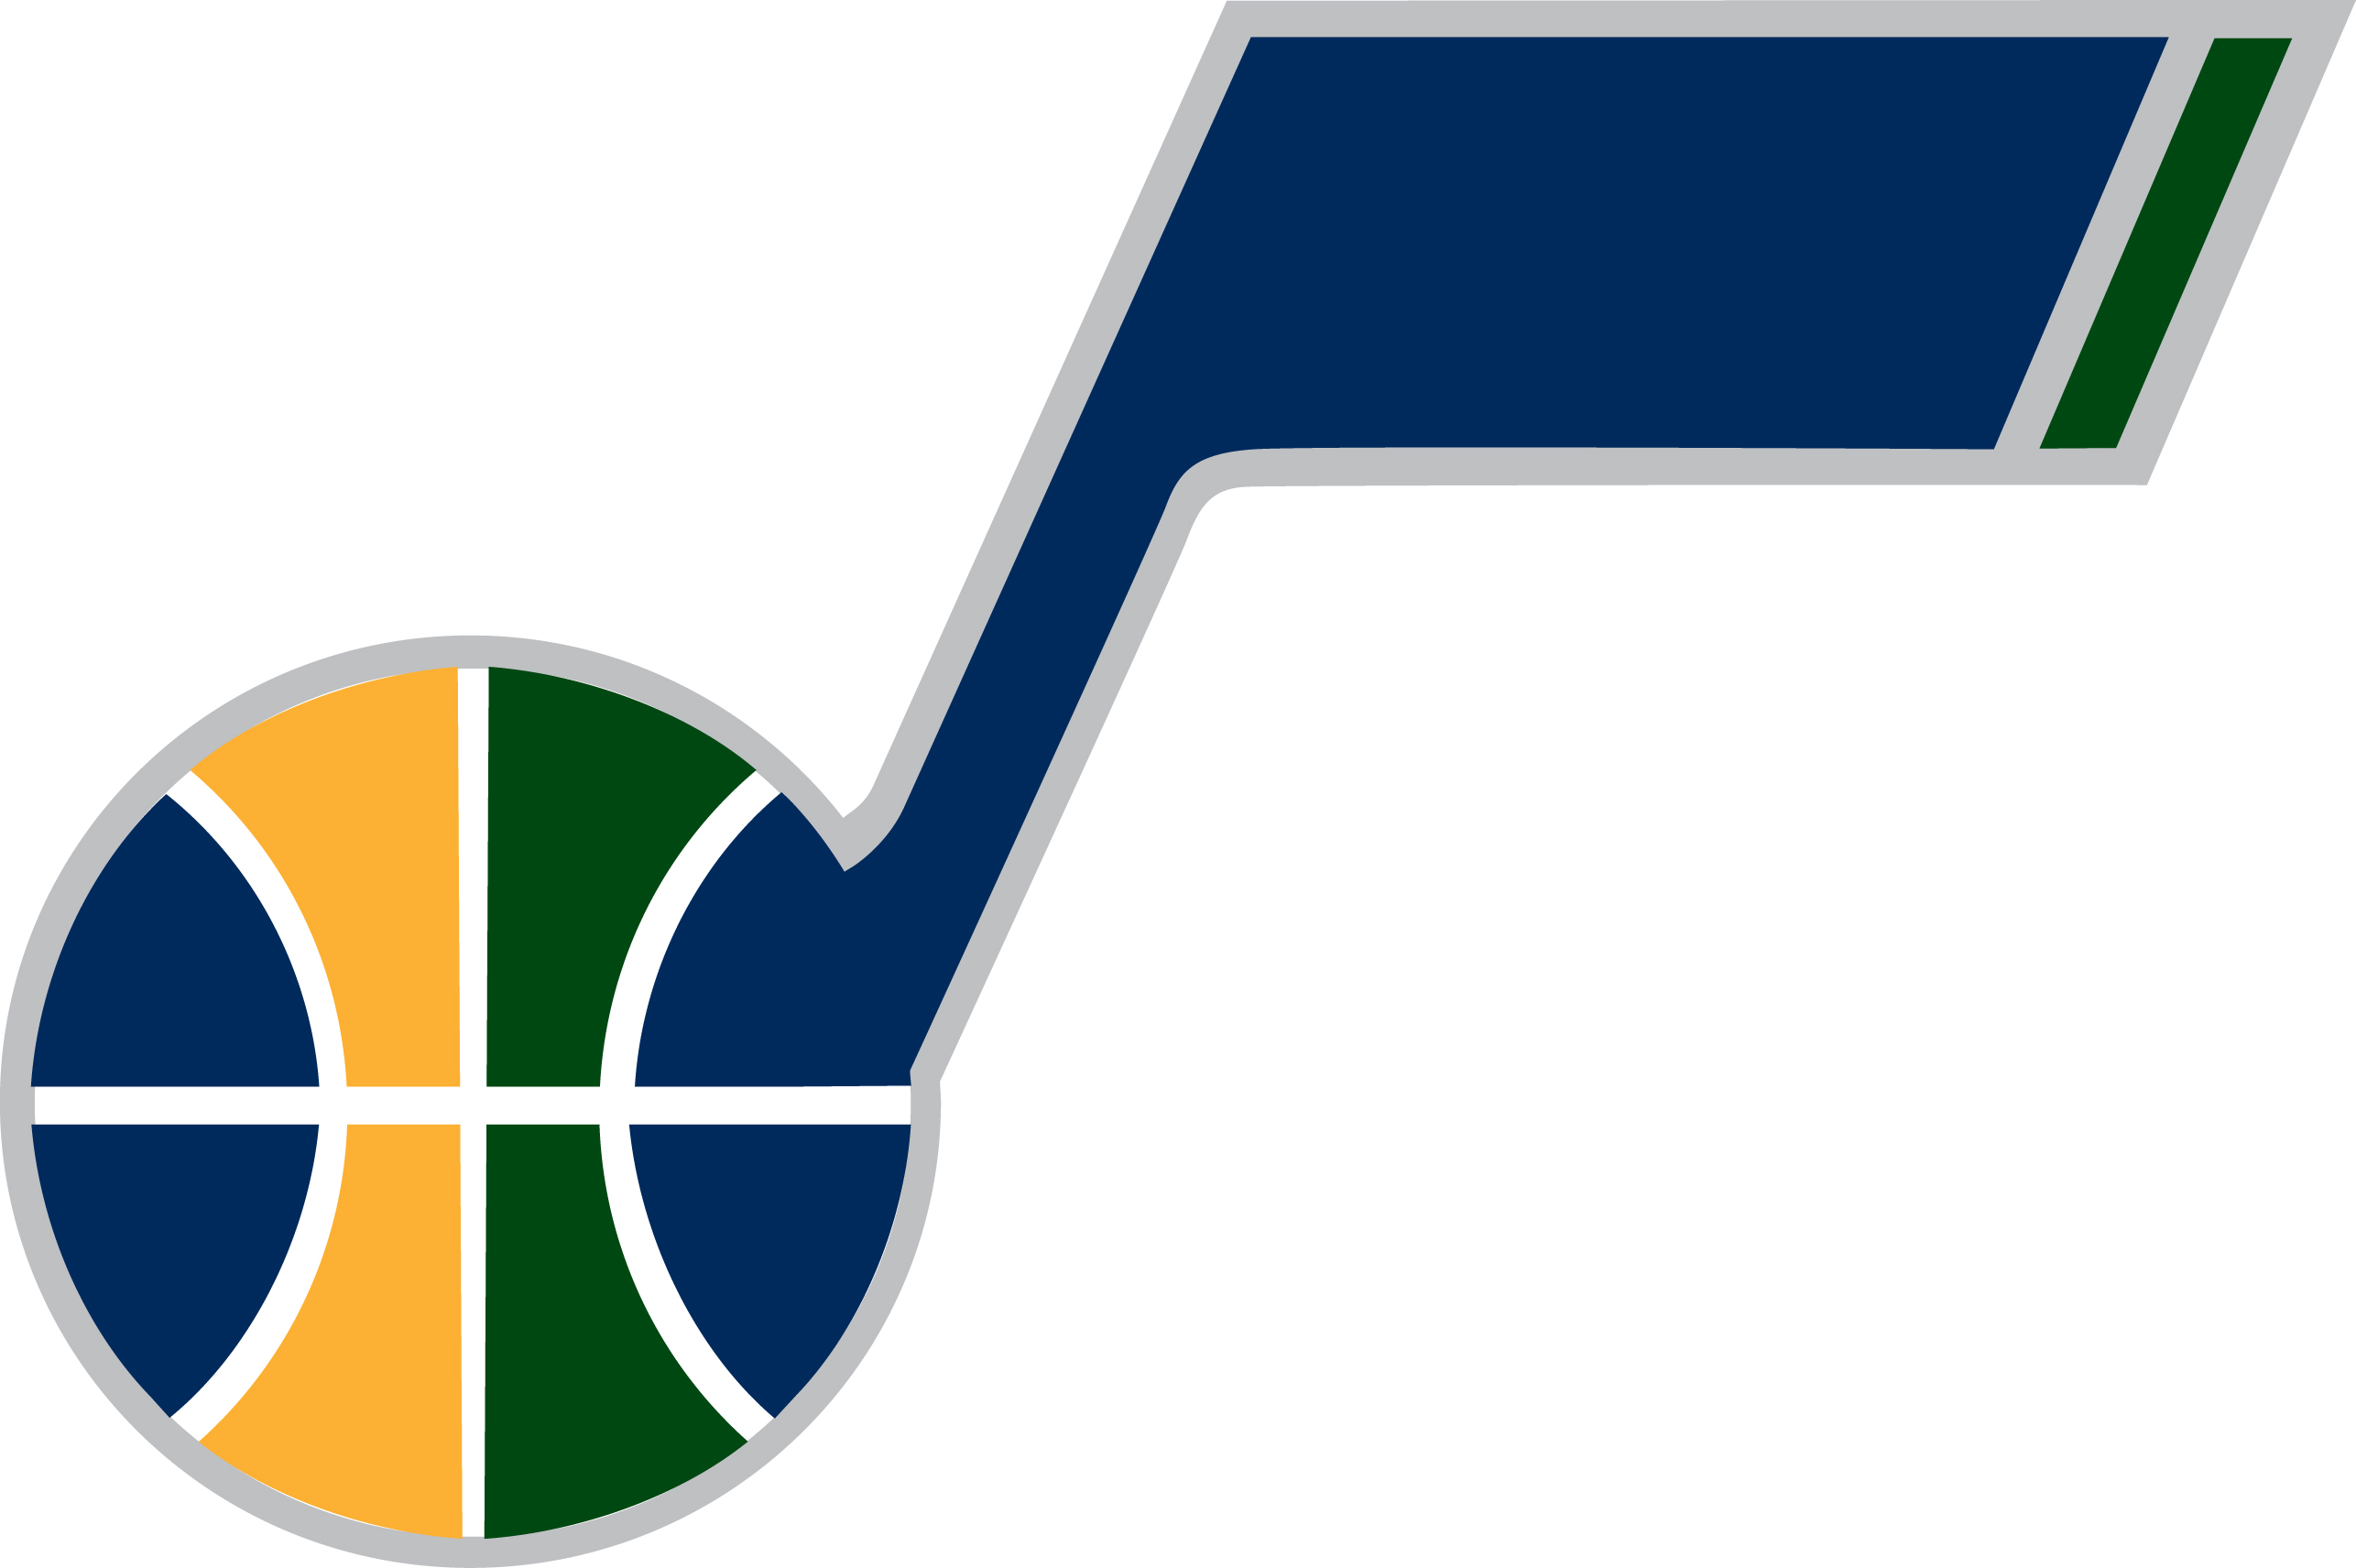 basketball utah jazz